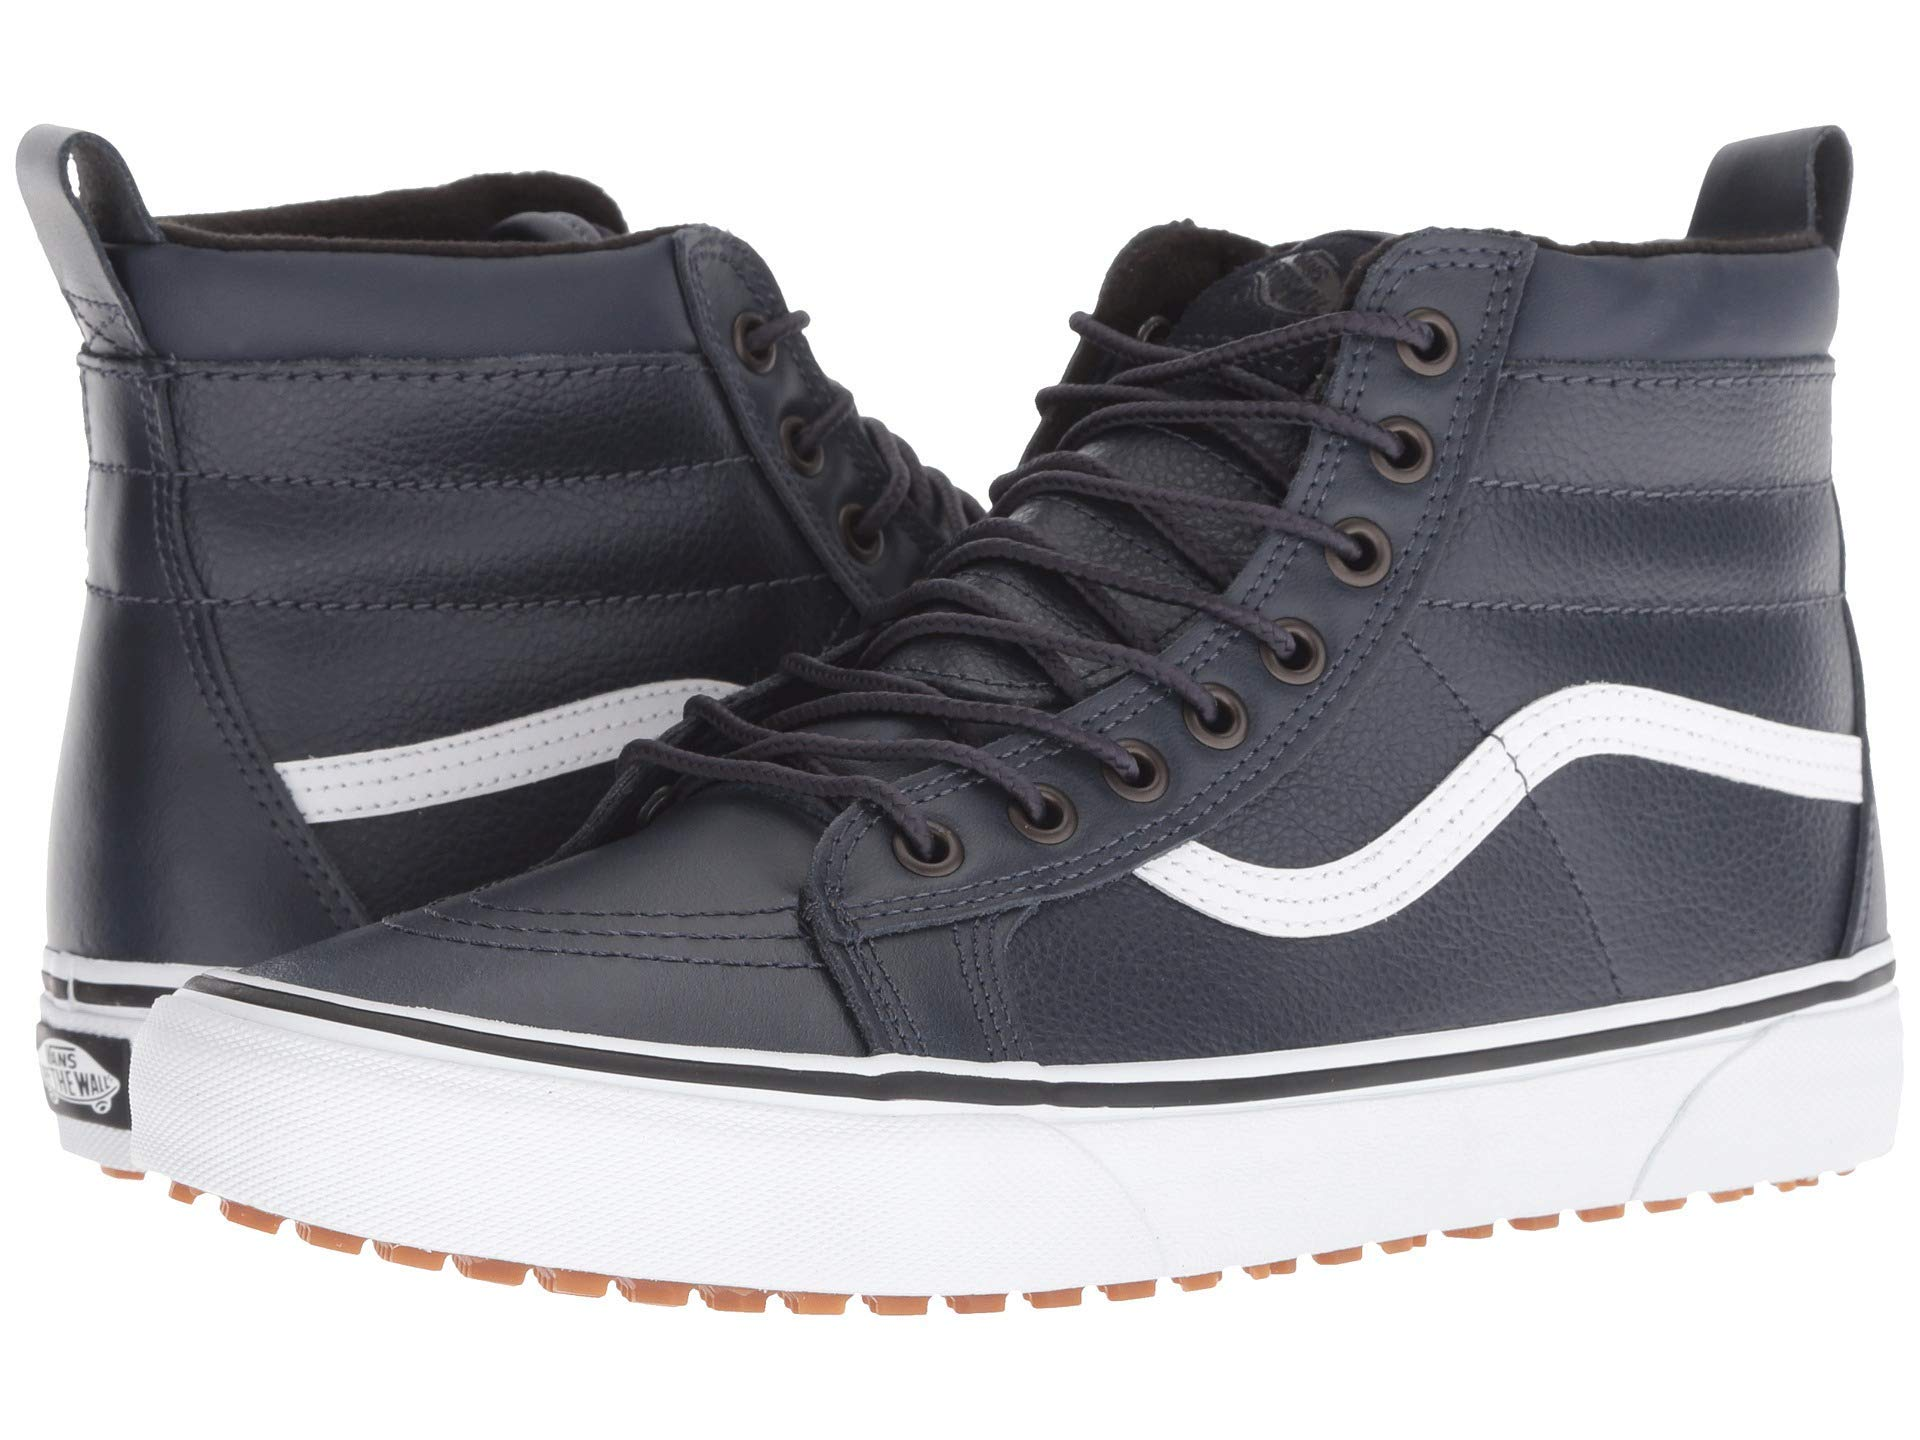 3496686a79d Galleon - Vans SK8-HI MTE Mens Mens Skateboarding-Shoes VN-A33TXUQD 8.5M - ( MTE) Sky Captain Leather